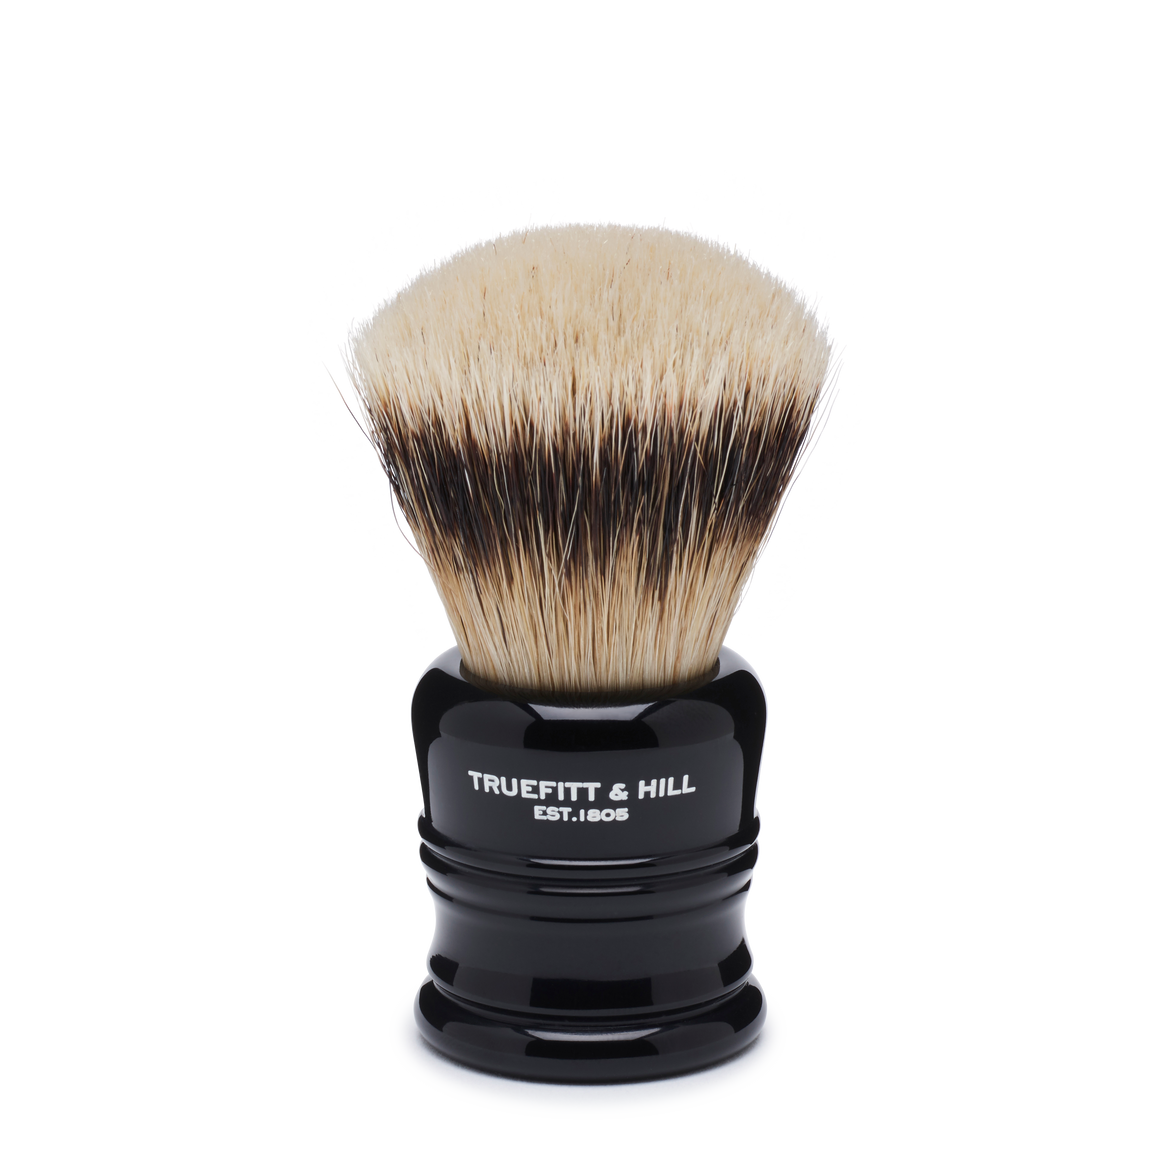 Silvertip Travel Shaving Brush - Truefitt & Hill USA